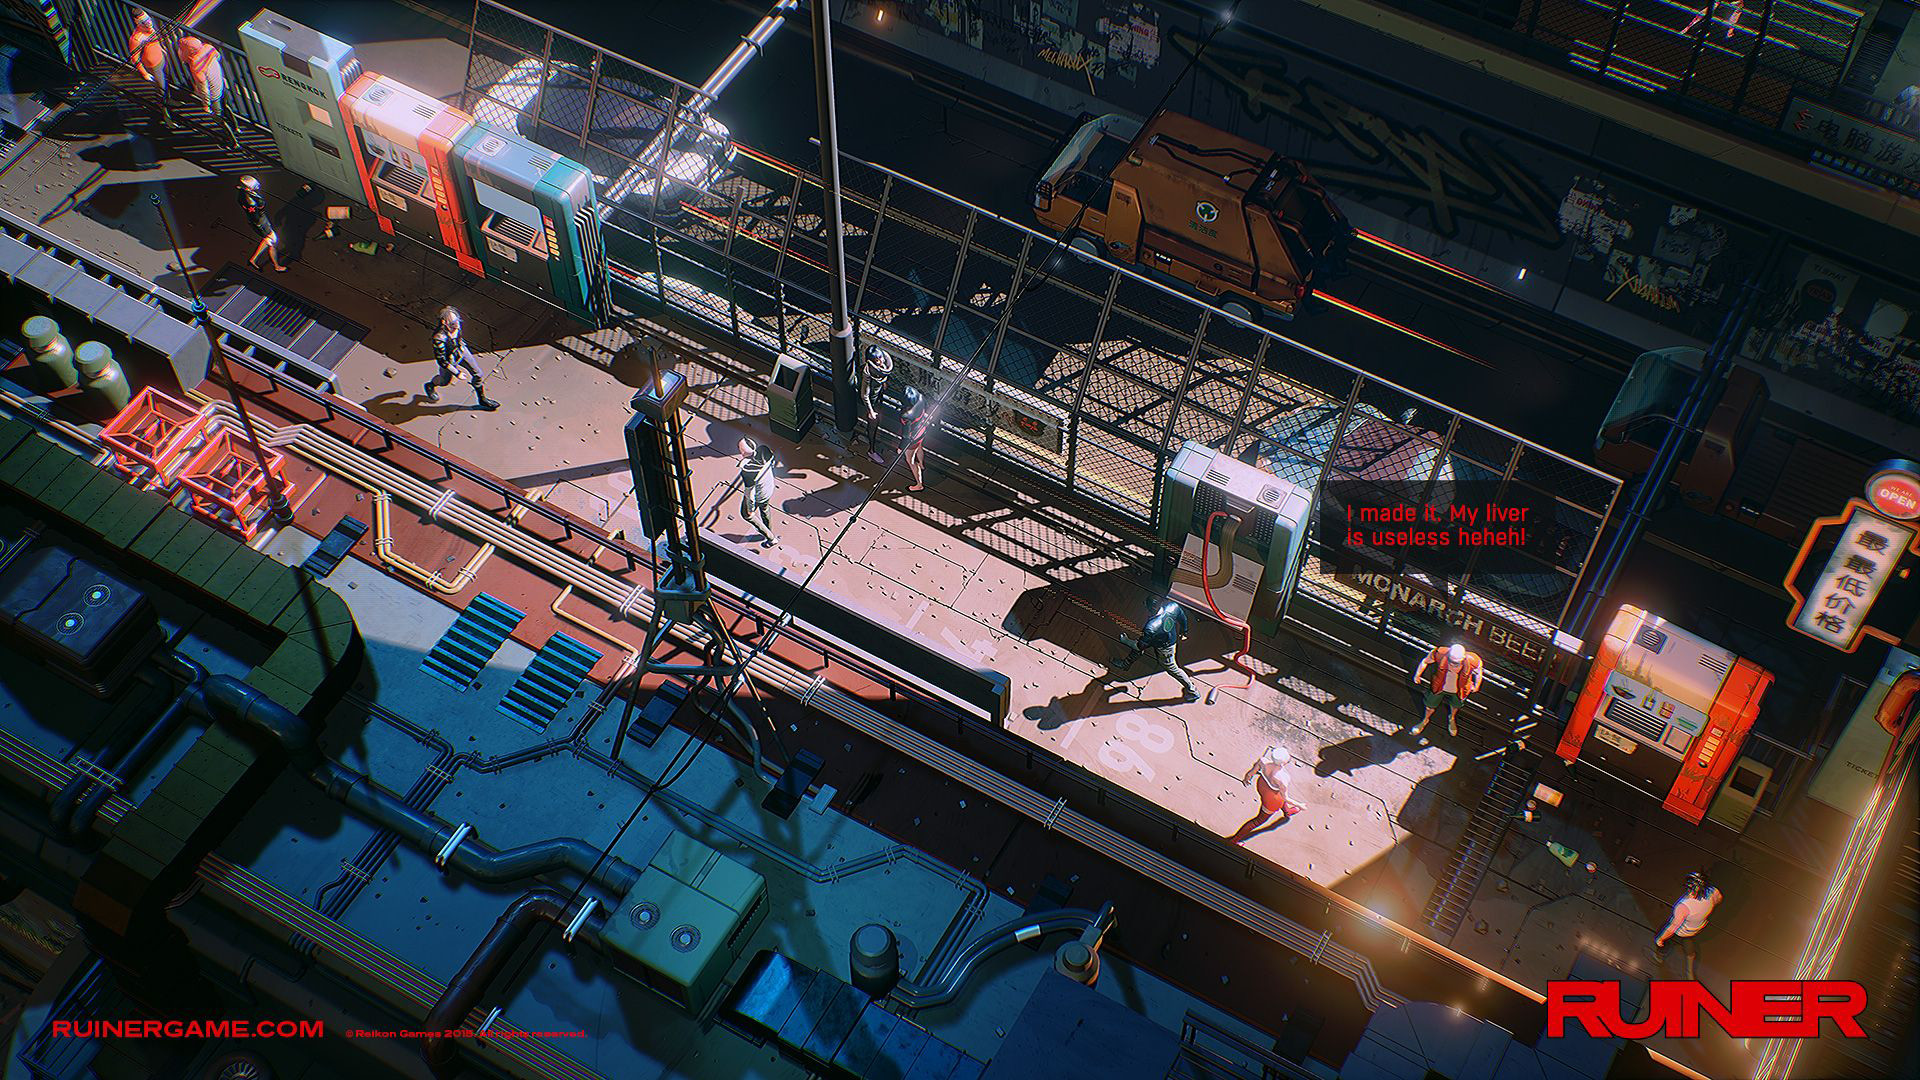 Ruiner is a neon-bright swords and guns game that will brook no blunders